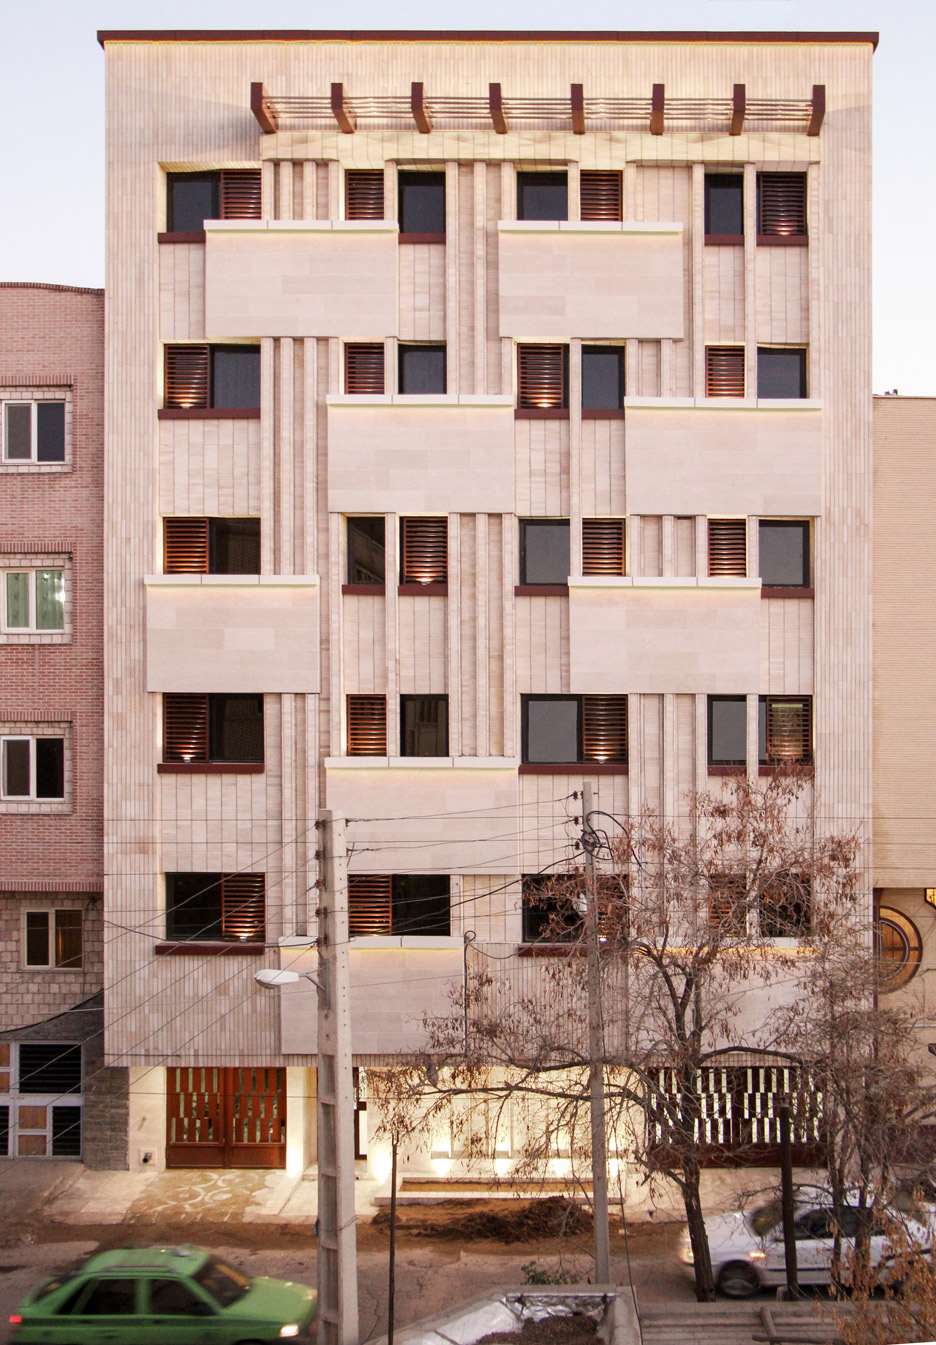 Khish-Khaneh Residential Building in Iran by Behzad Yaghmaei and Azadeh Mahmoudi